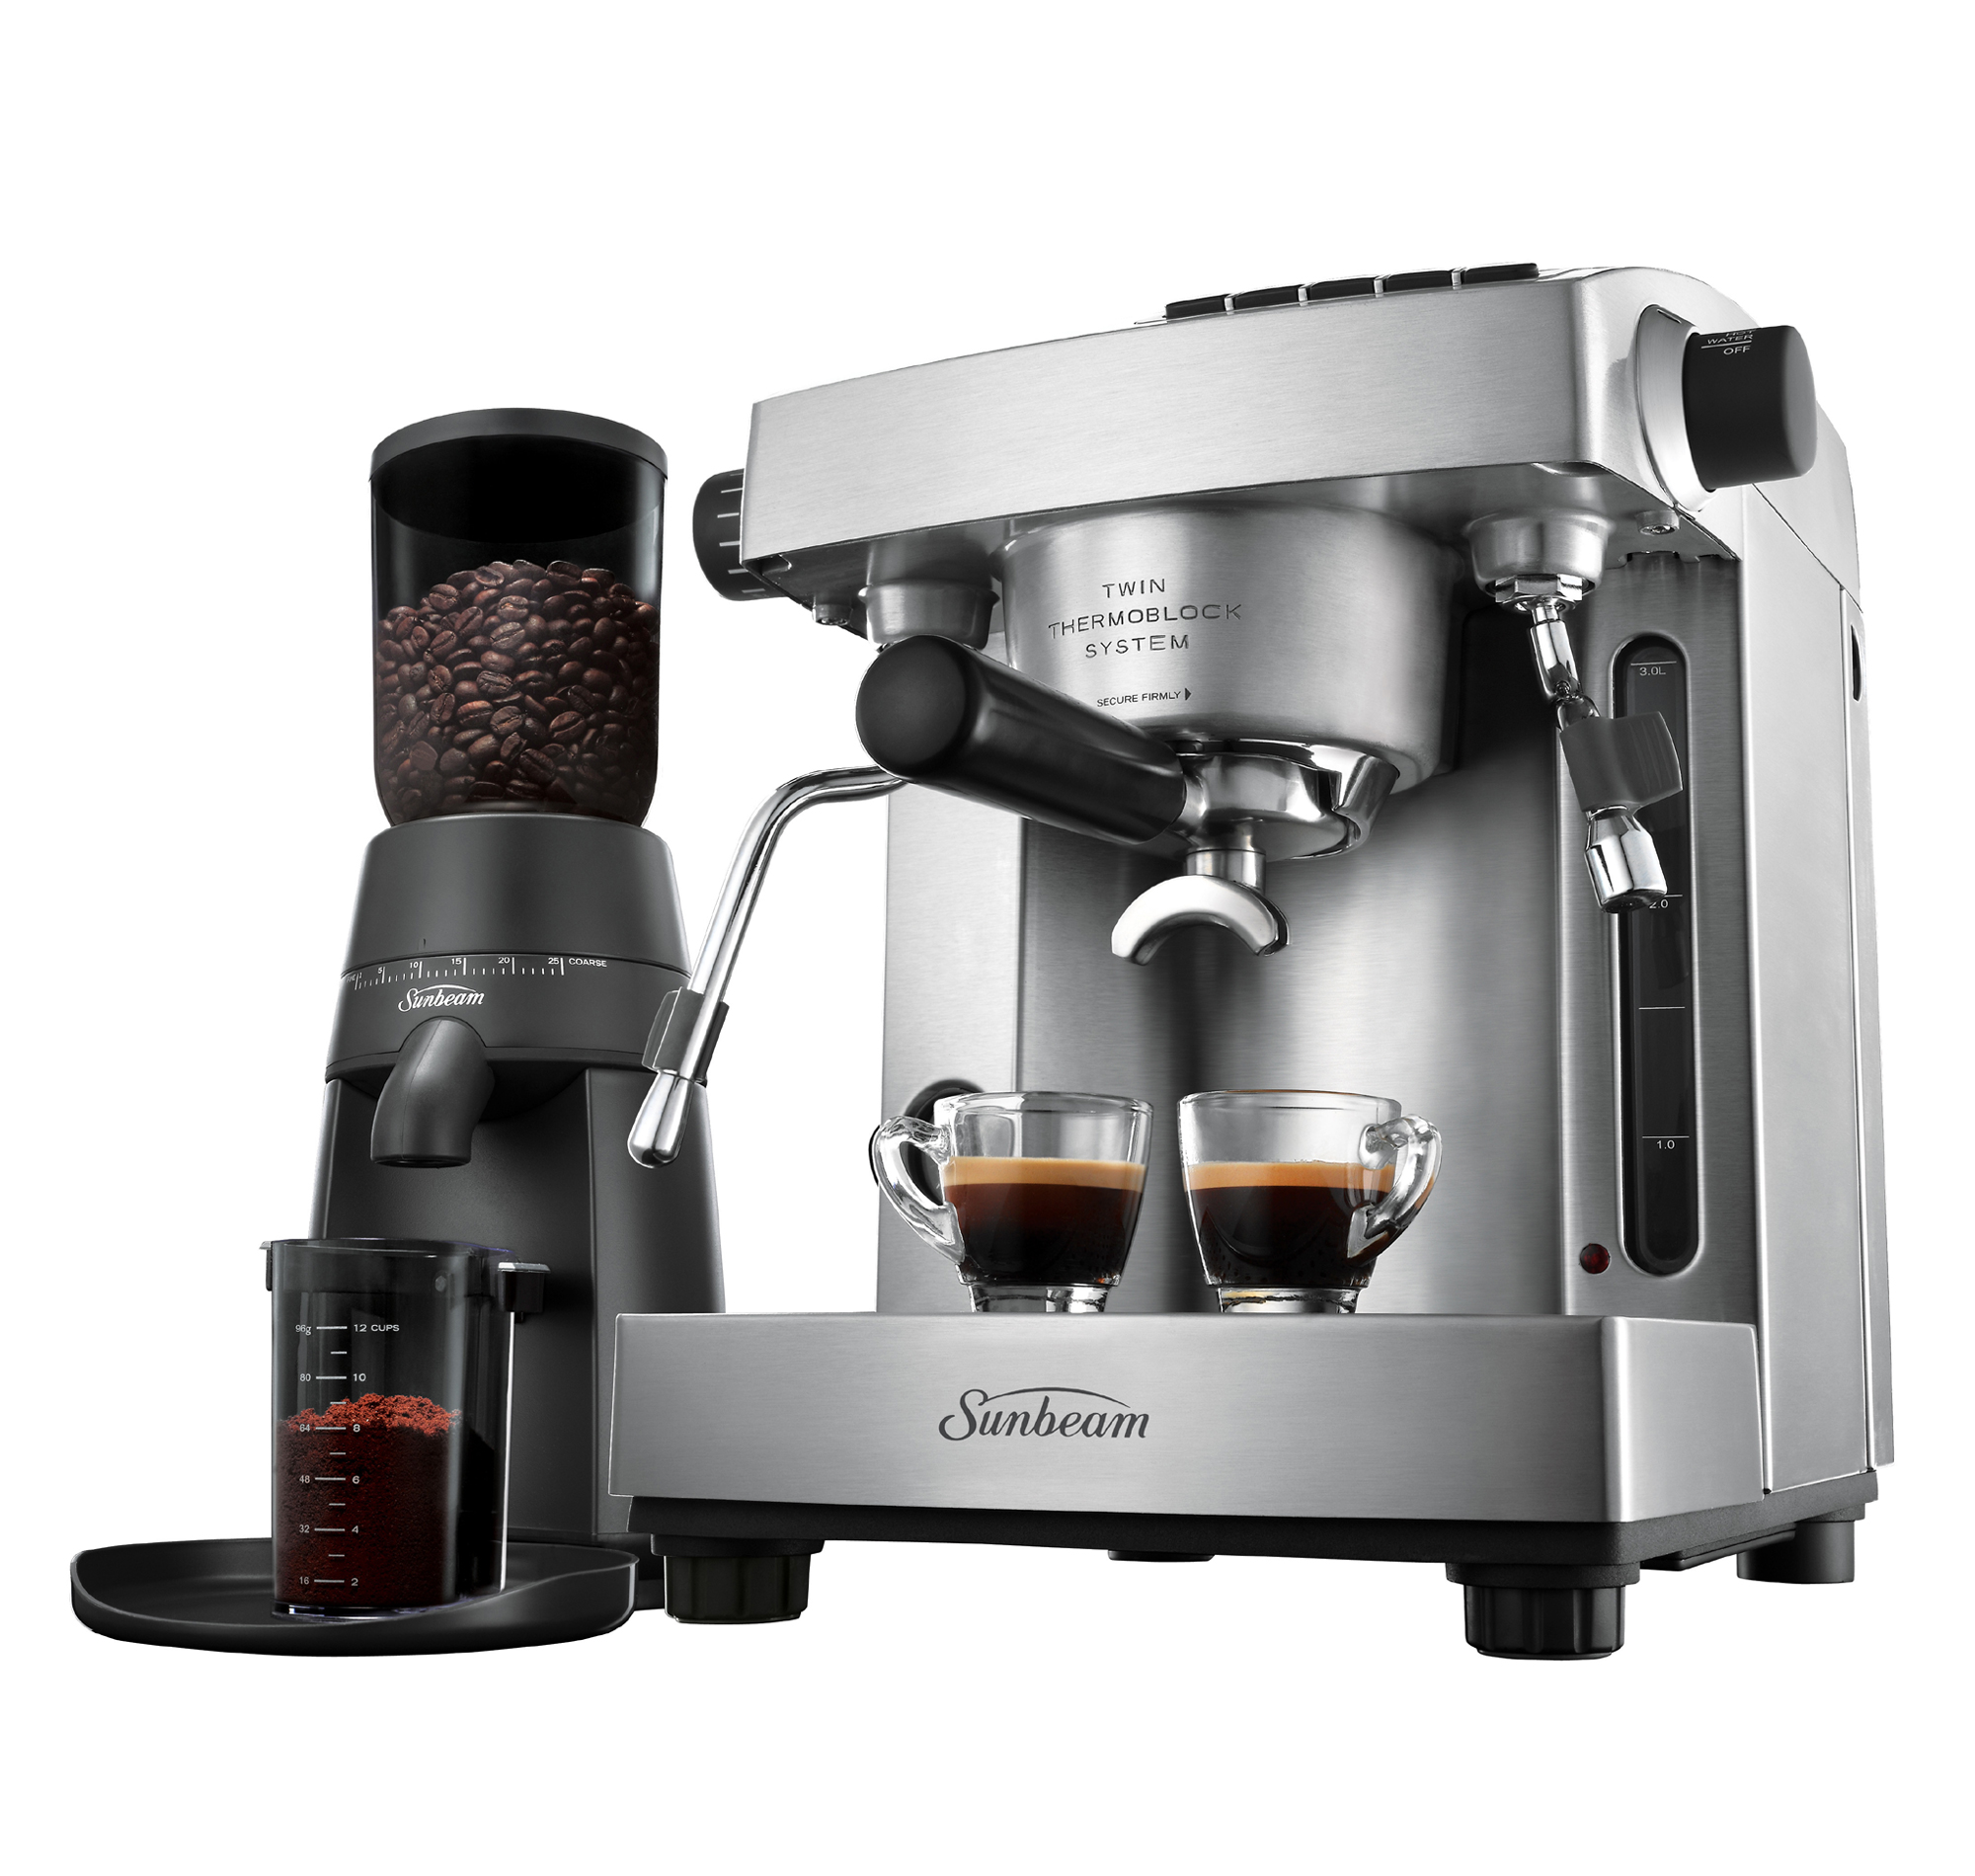 Sunbeam cafe series coffee machine em6910 manual watch online sunbeam cafe series coffee machine em6910 manual watch online hollywood movies in hindi journey 2 fandeluxe Gallery